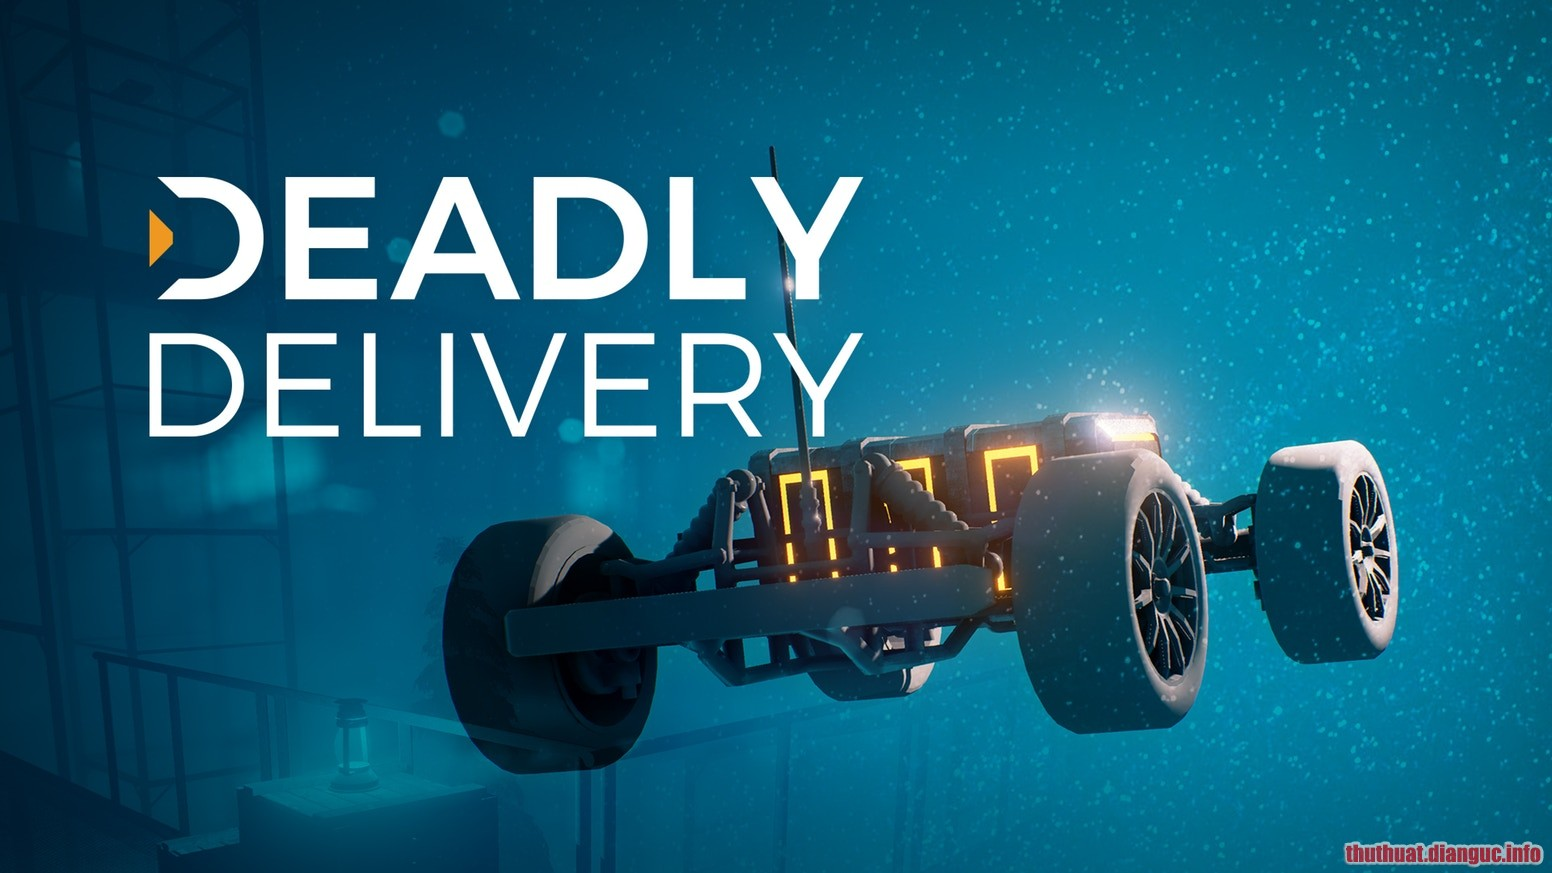 Download Game Deadly Delivery Full Crack, Game Deadly Delivery, Game Deadly Delivery free download, Game Deadly Delivery full crack, tải Game Deadly Delivery miễn phí